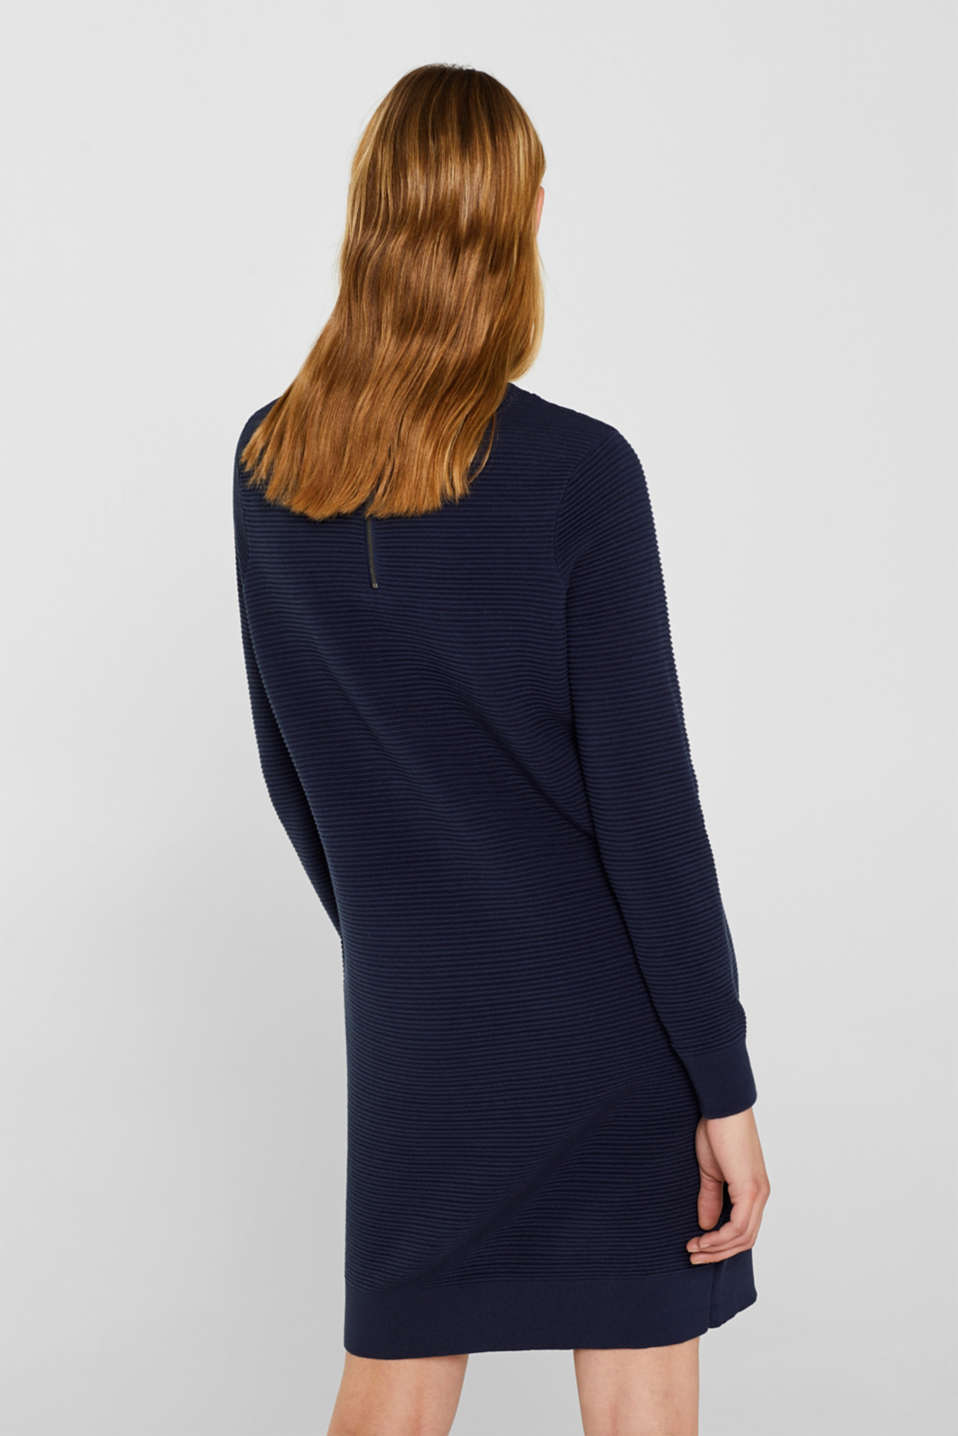 Knit dress with a ribbed texture, NAVY 2, detail image number 2